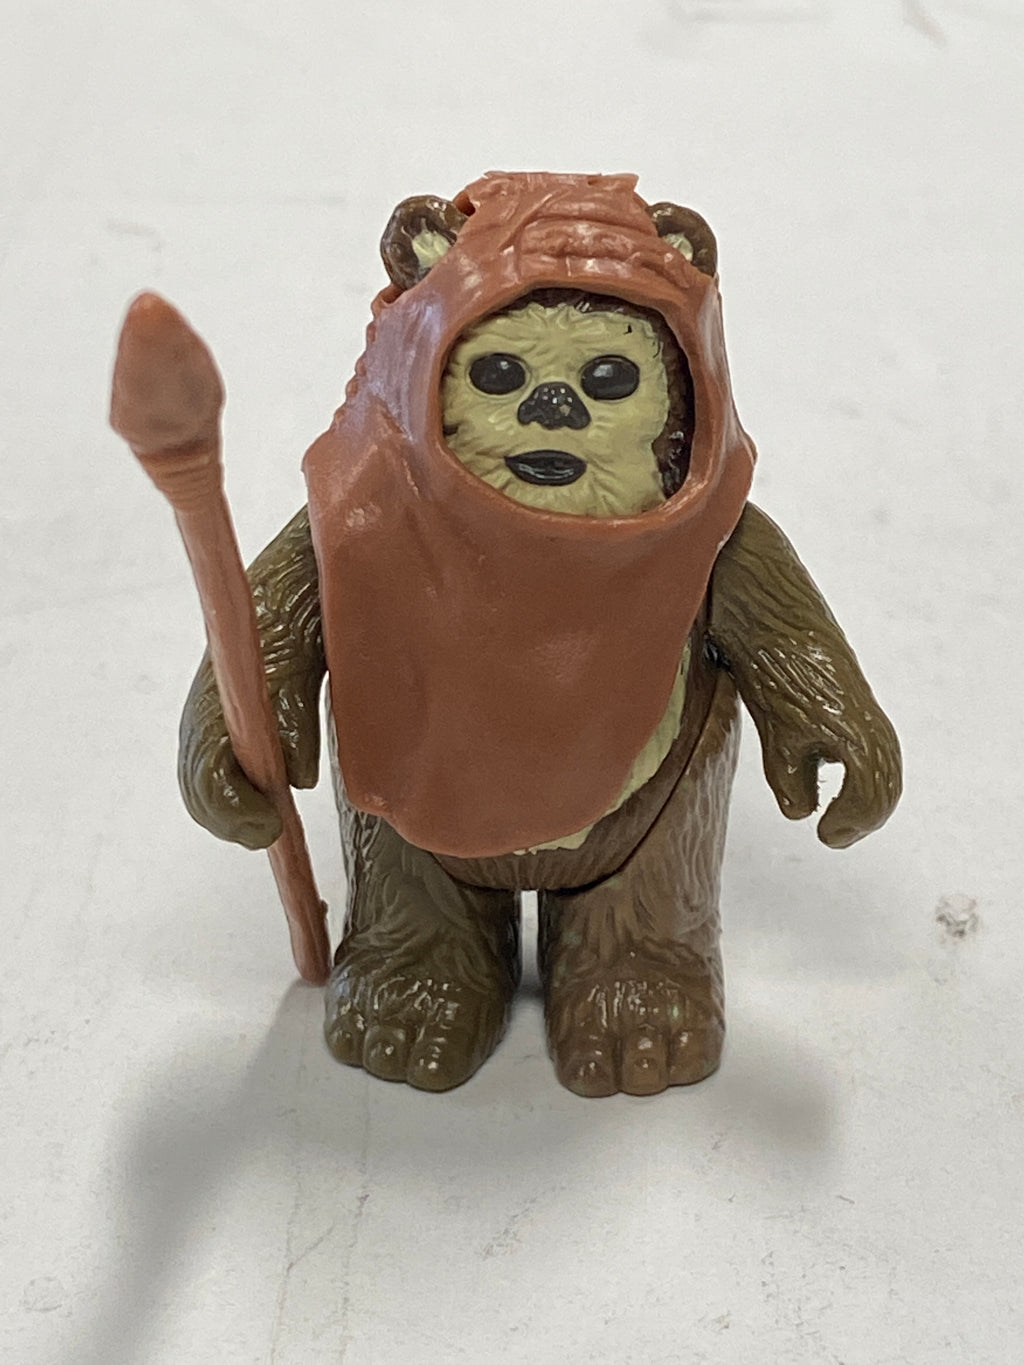 Kenner Star Wars Return of the Jedi vintage Wicket (1984)